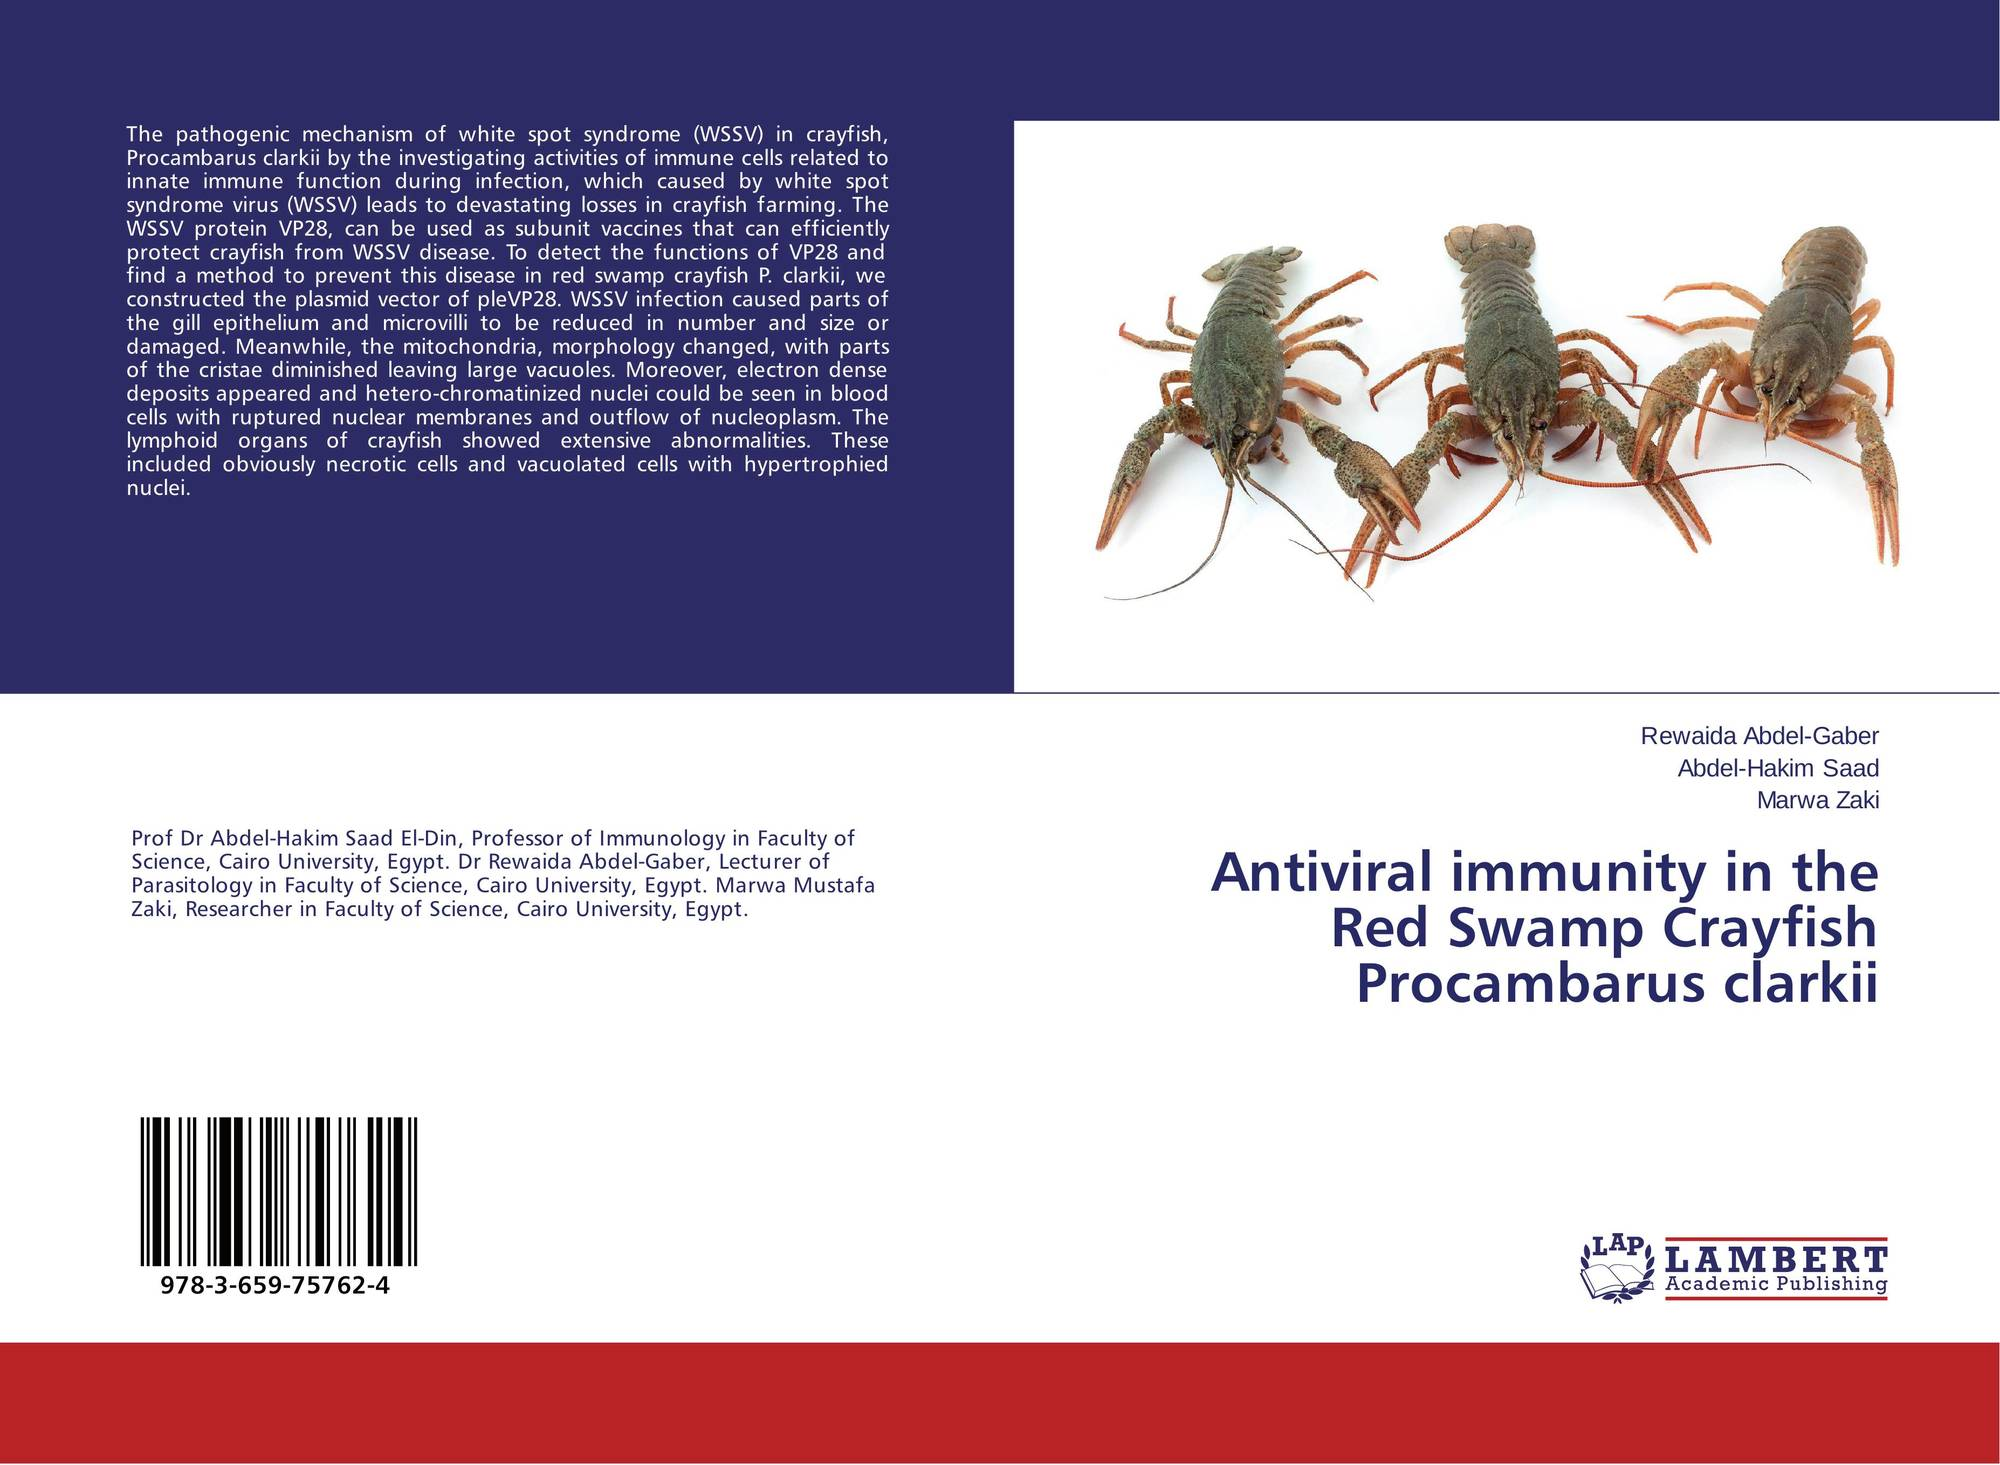 alterations in immunity case study O chapter 23 alterations in cellular growth, pgs 837-901 guidelines for detection of cancer case study: o systemic lupus erythematosis 21 unit iv - seminars: ate-rations in cellular growth/immunity related activites - assignment health promotion in the community.